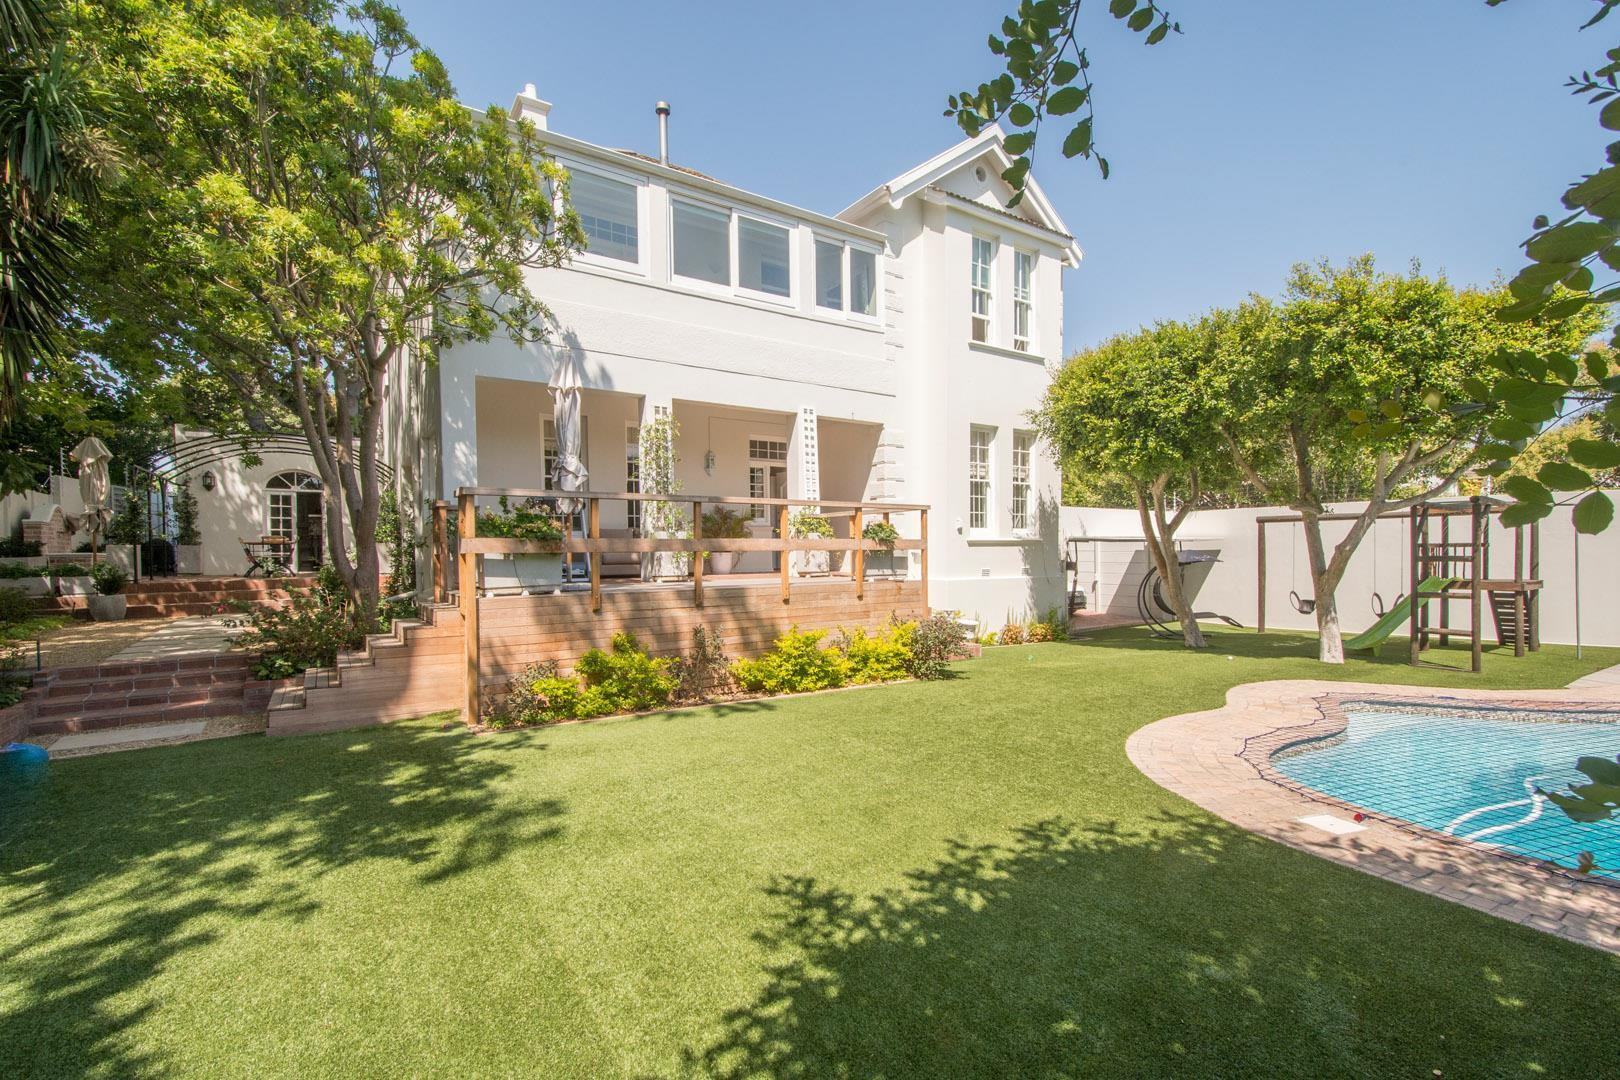 Elegant, simply stunning Victorian in immaculate condition